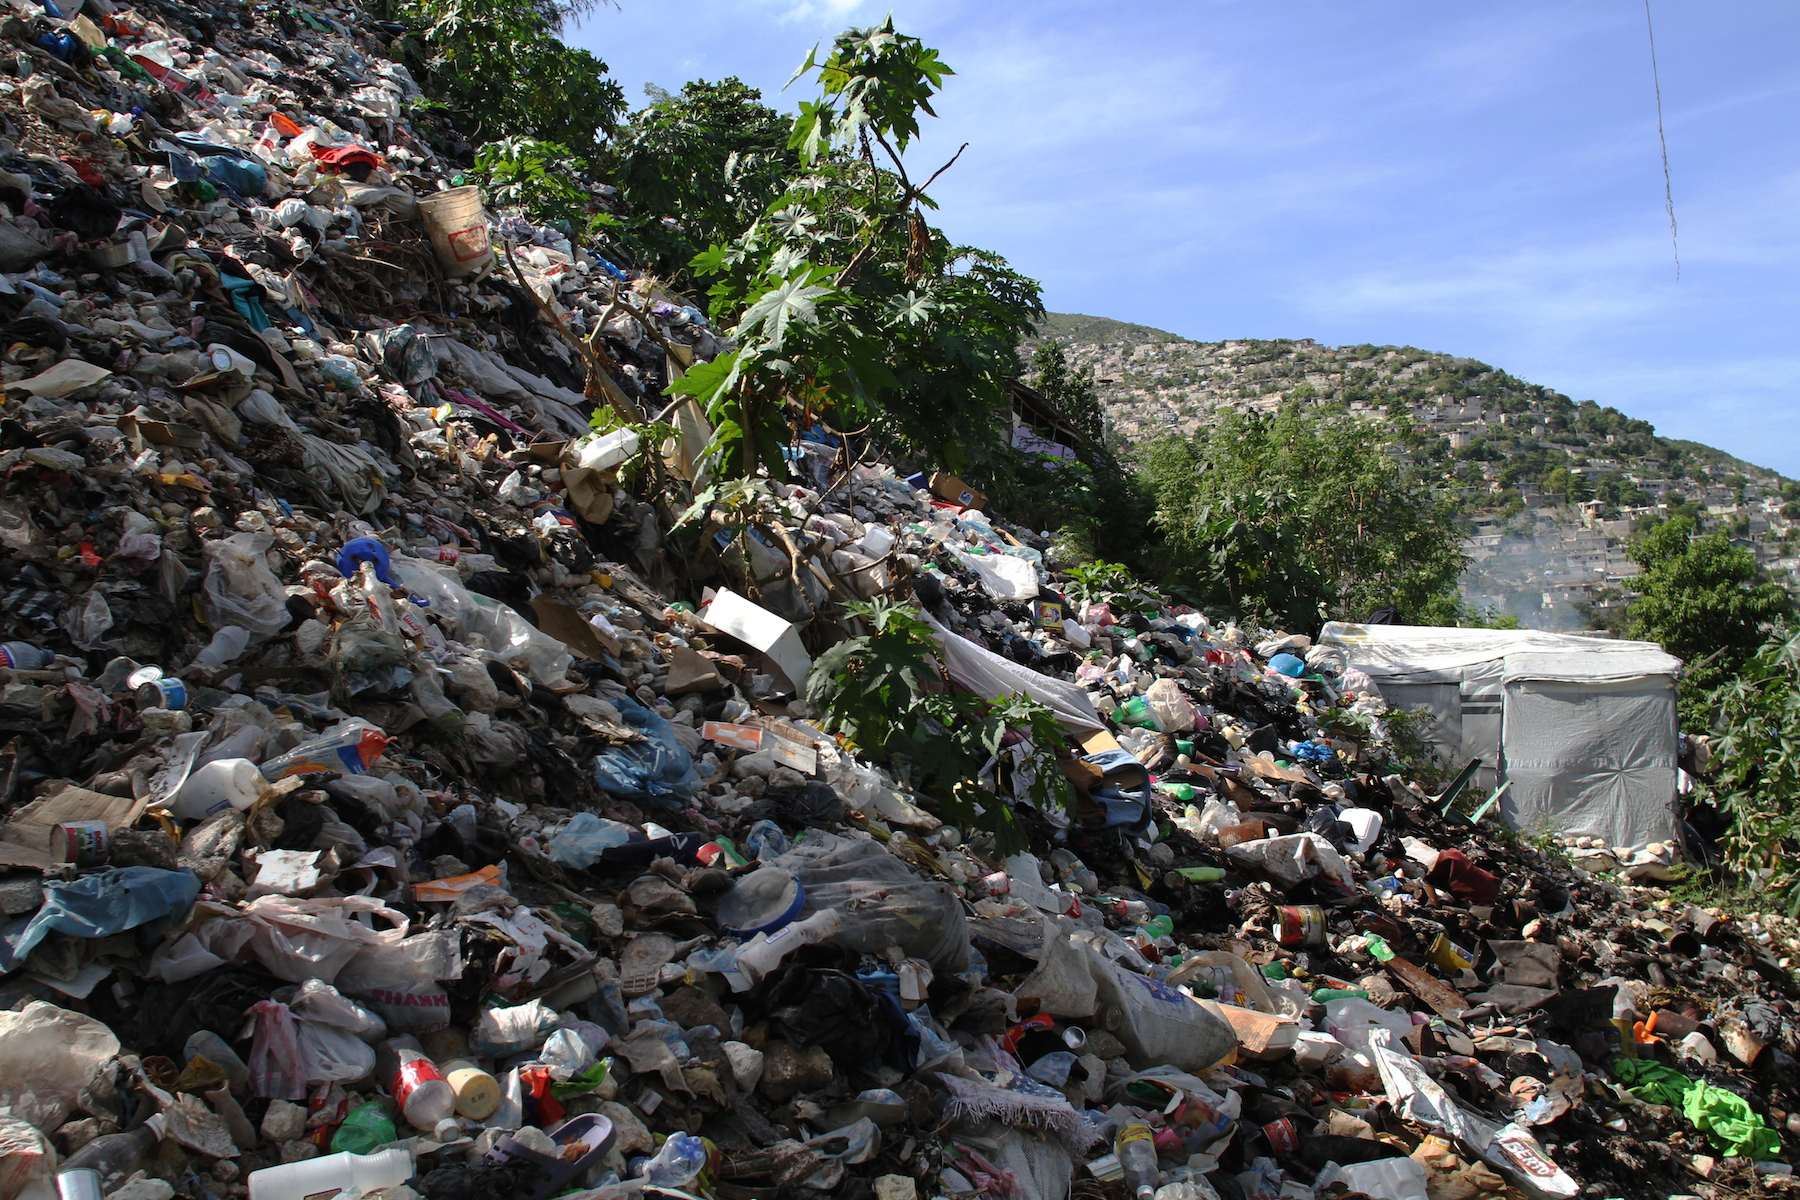 Garbage piles up above the Acra 2 camp in Port-au-Prince's hilly Pétion-Ville commune.